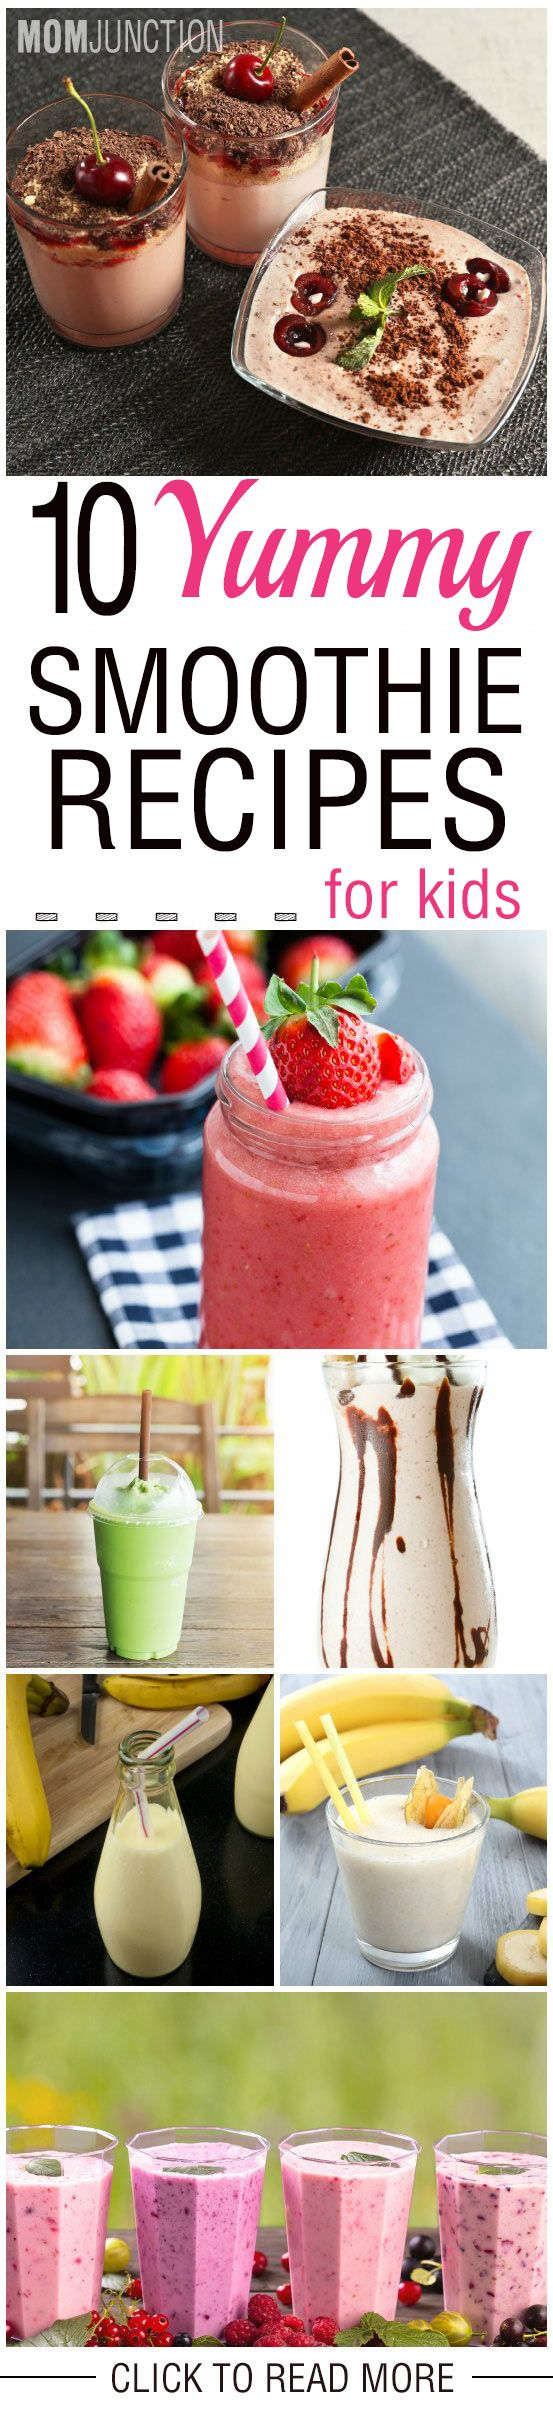 10 Yummy Smoothie Recipes You Must Try For Your Kids: Kids are attracted by the colors of smoothies, so your picky eater will not hesitate in having one.Here are some smoothie recipes which you can try. Have a look